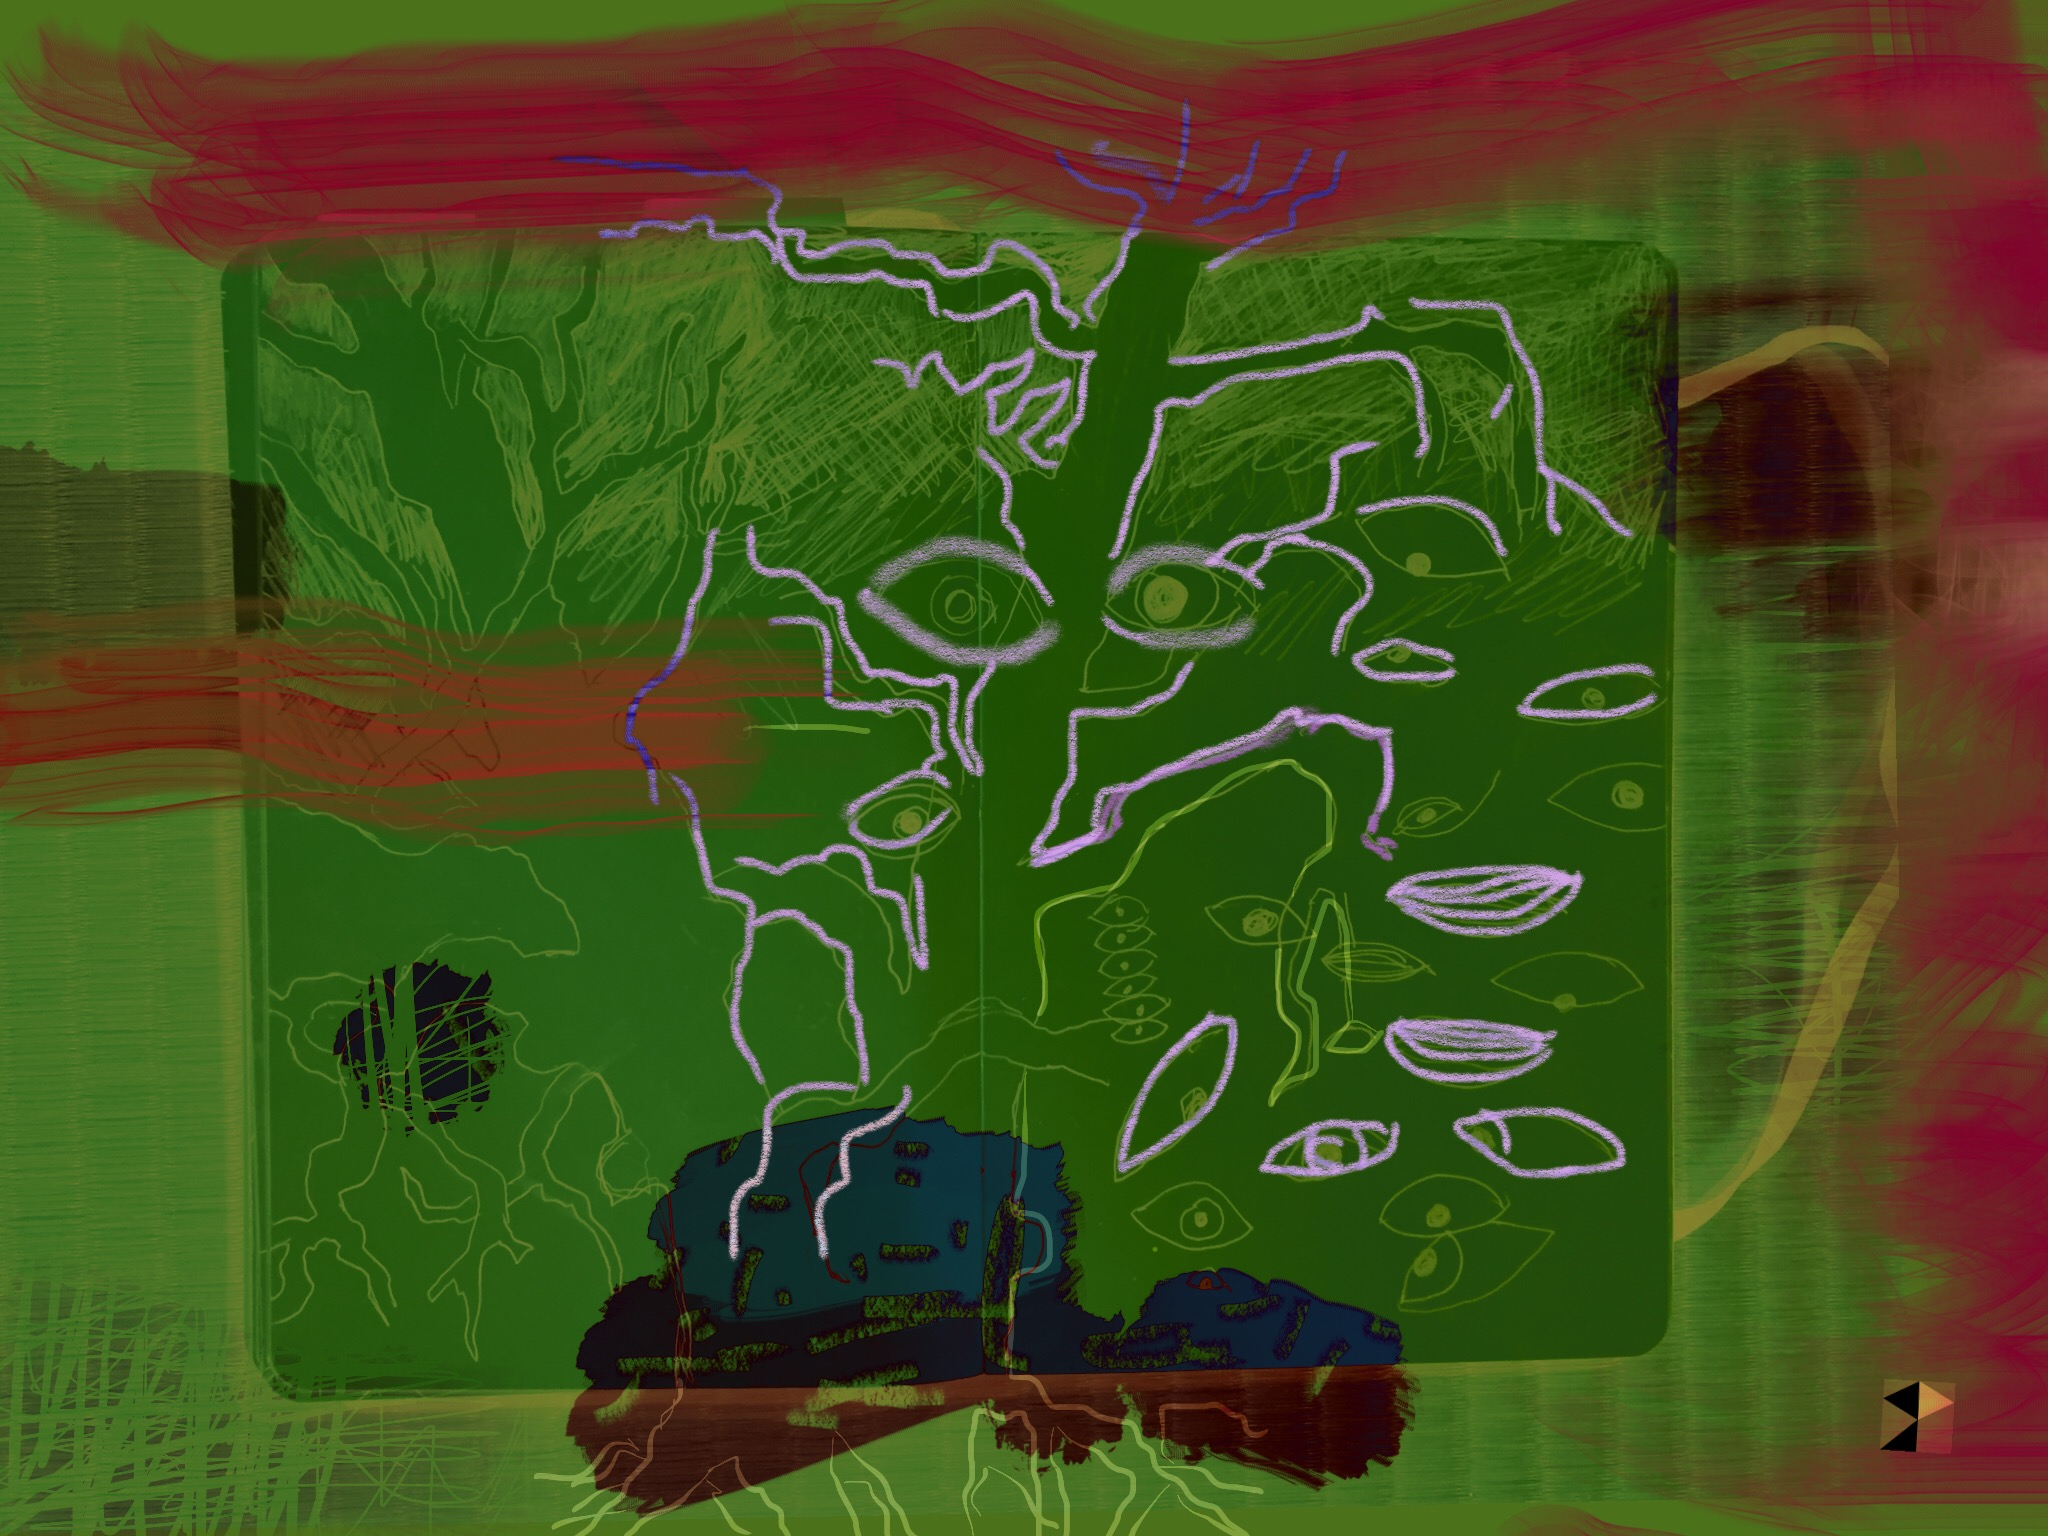 """Green Day   Electronics Painting, Sketchbook Scan, iPad, Procreate, Pencil 53, Photoshop. © 2016 dimensions variable to 48"""" x 60"""" giclee limited edition prints available contact the artist"""